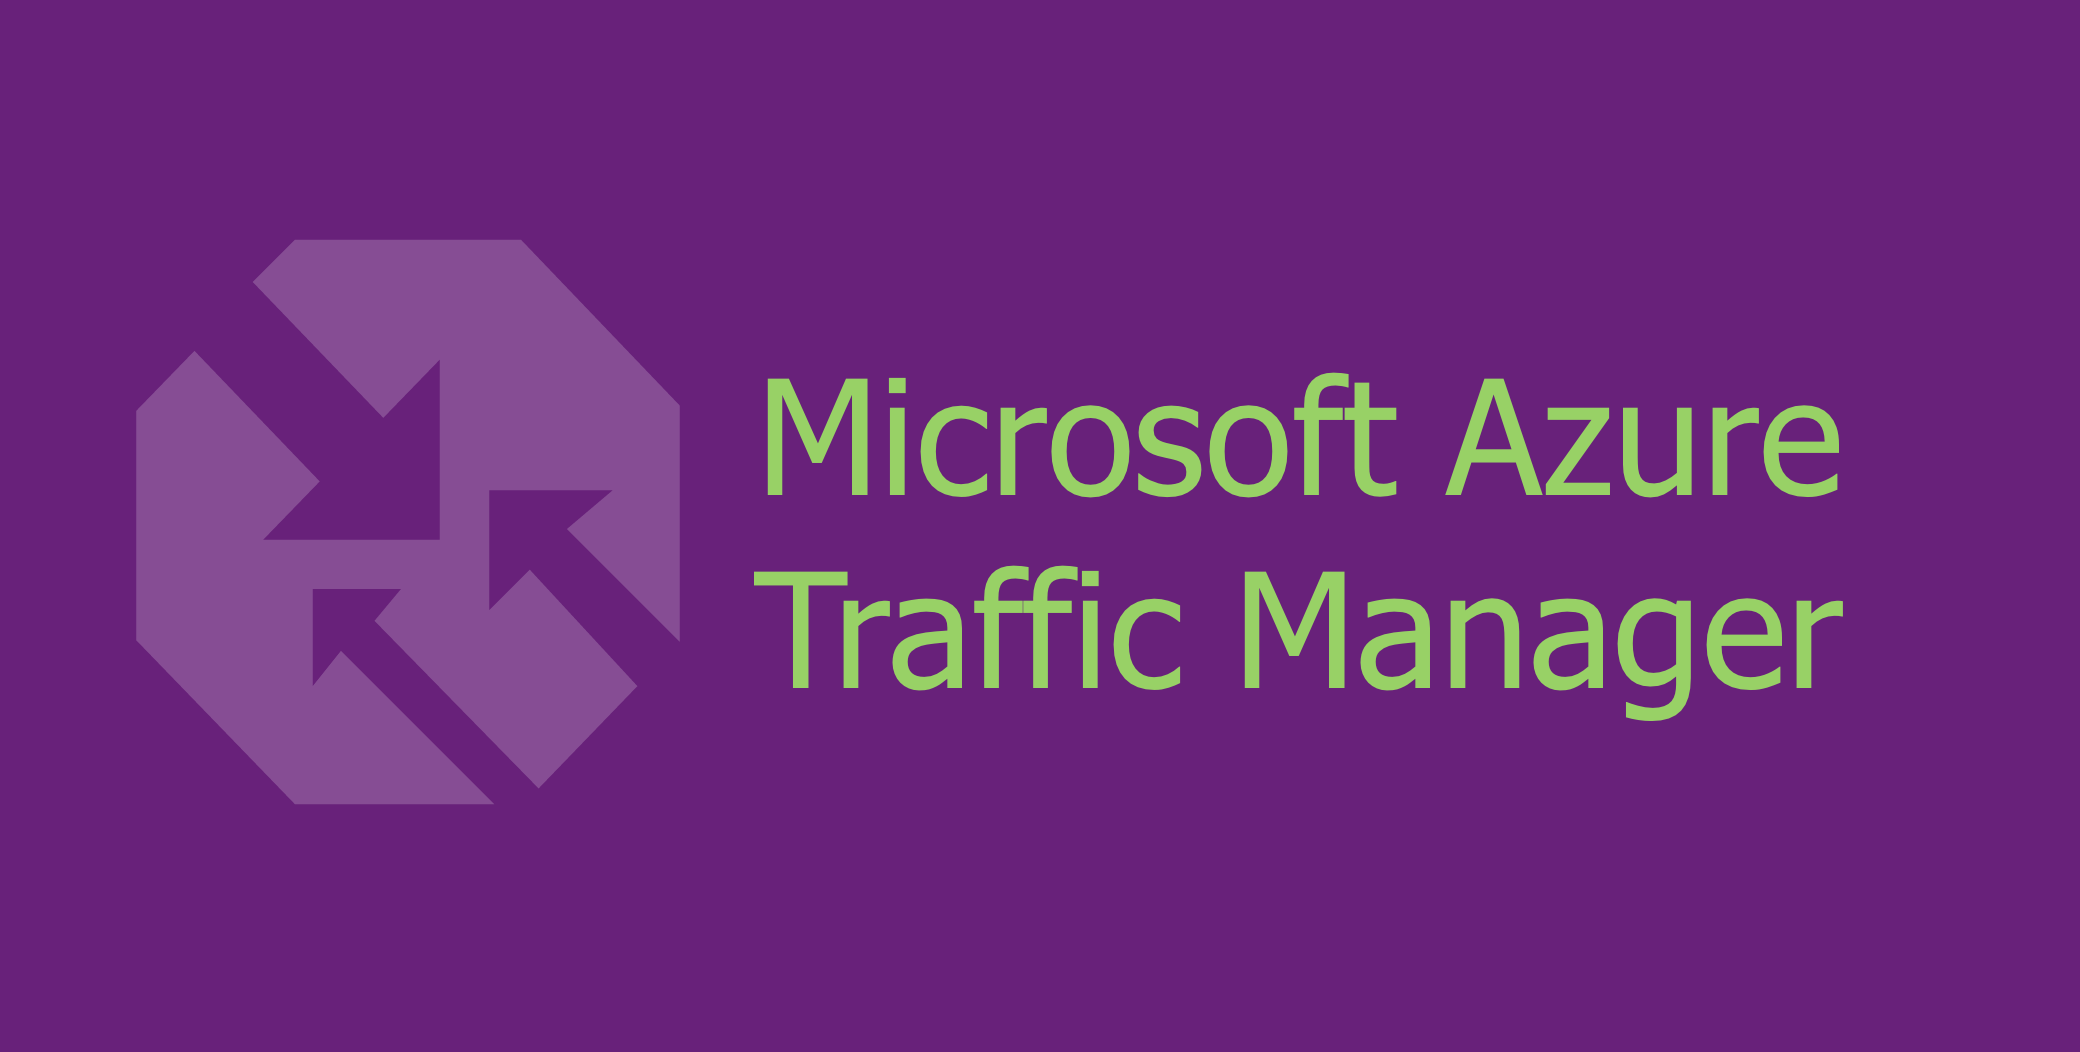 Microsoft Azure Traffic Manager